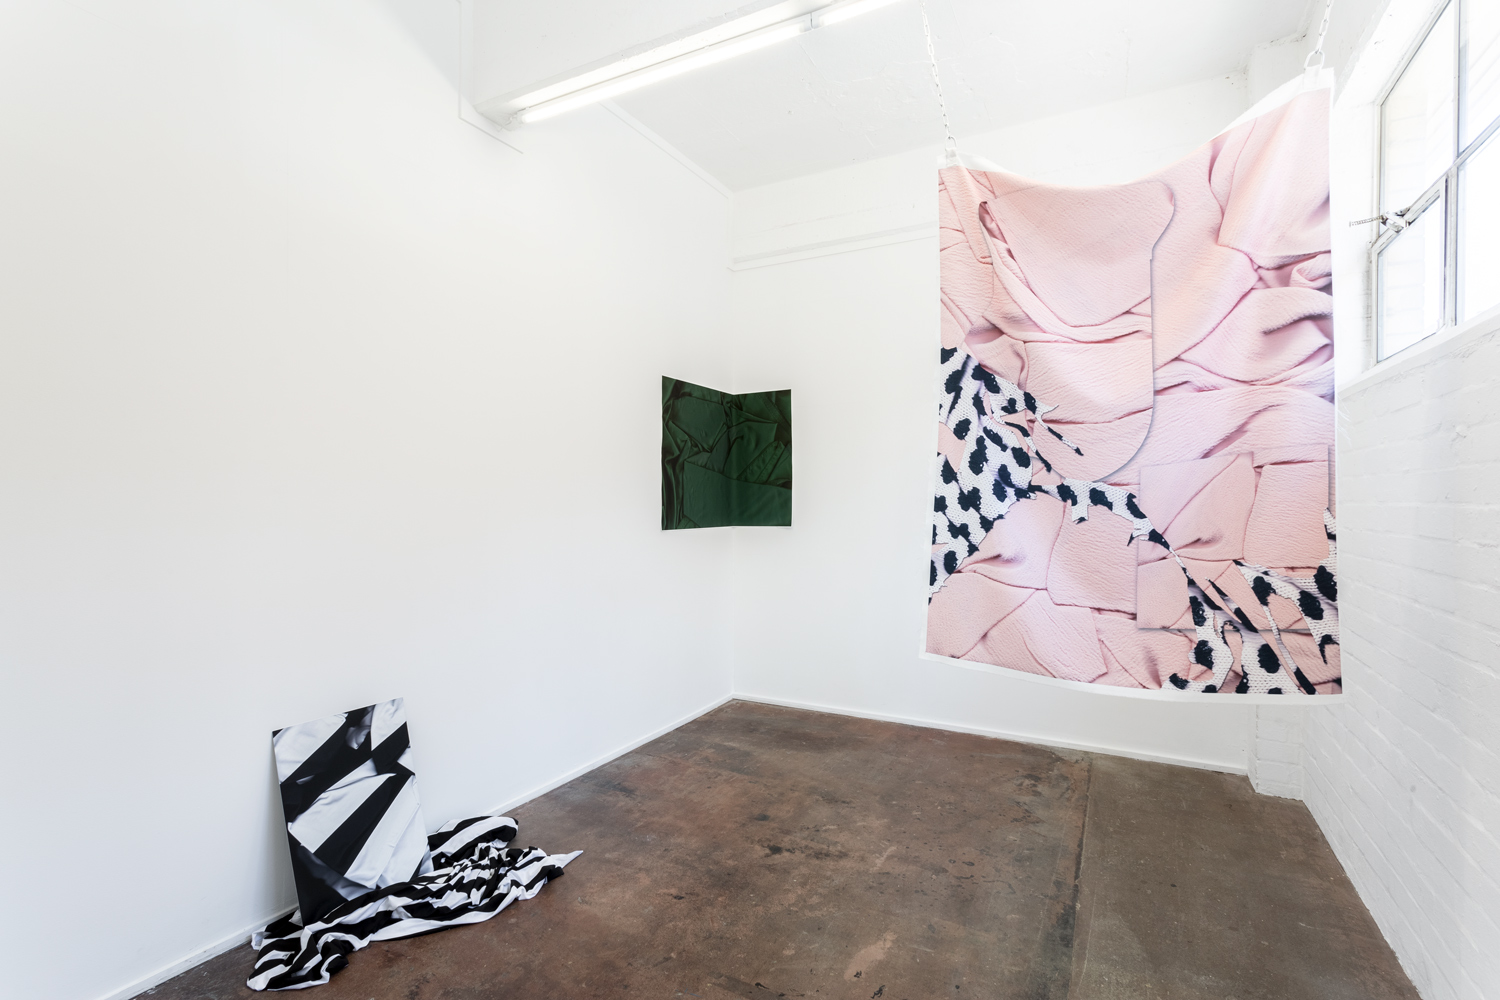 Installation view of exhibition  A Loud Cellophane at Bus Projects, Melbourne 2018  L-R:WB, Moss Forest, Jumper  Photo: Christo Crocker